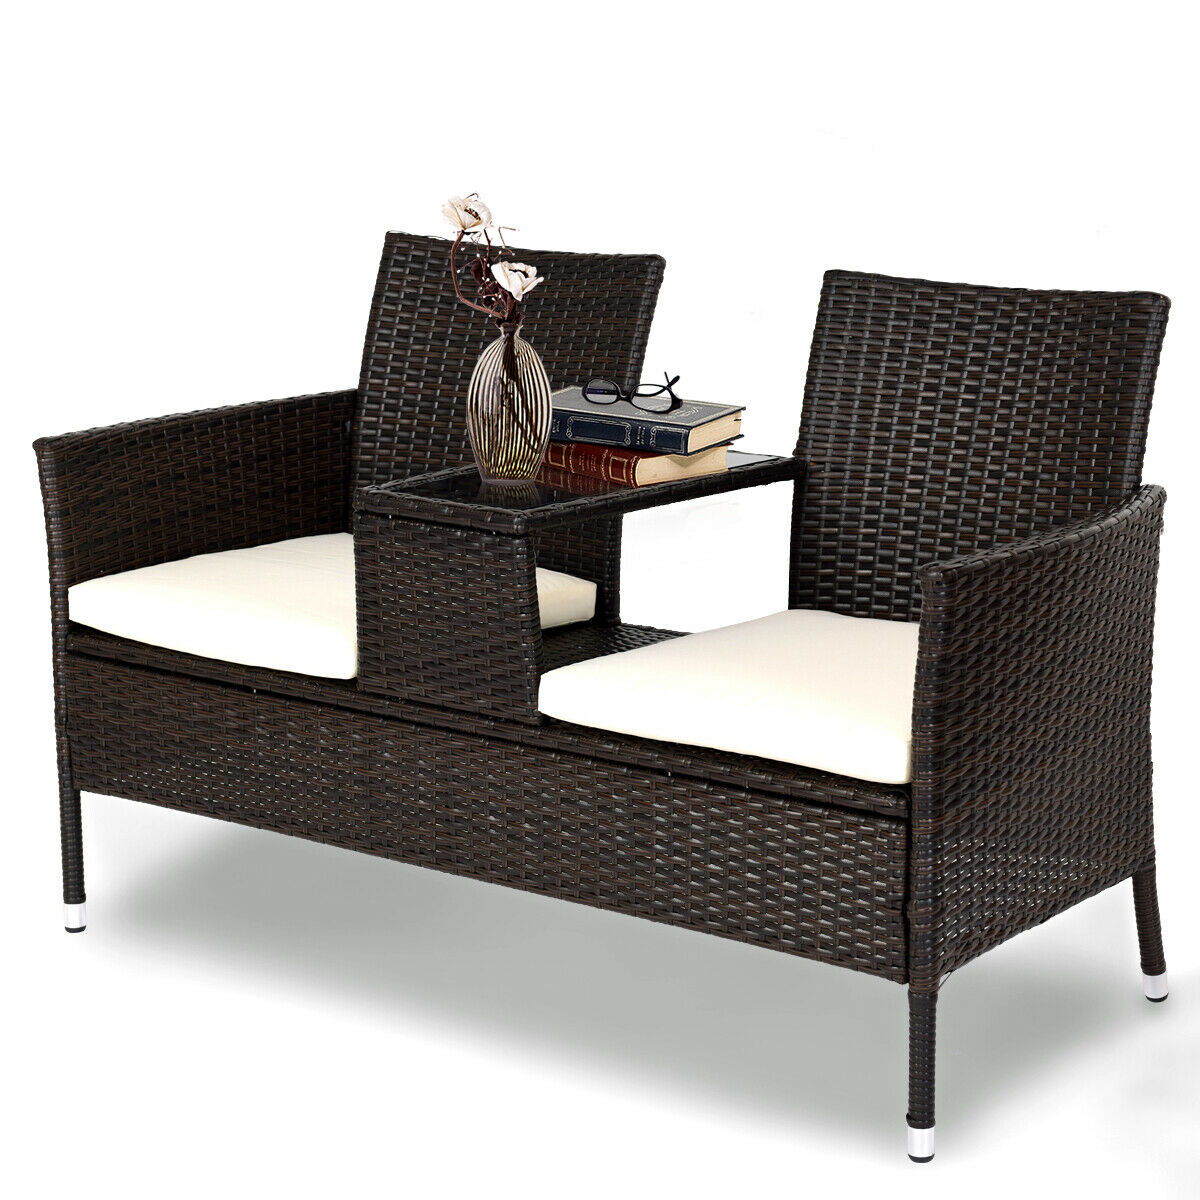 Costway Patio Rattan Chat Set Seat Sofa Loveseat Table Chairs w/ Cushion - image 9 de 9